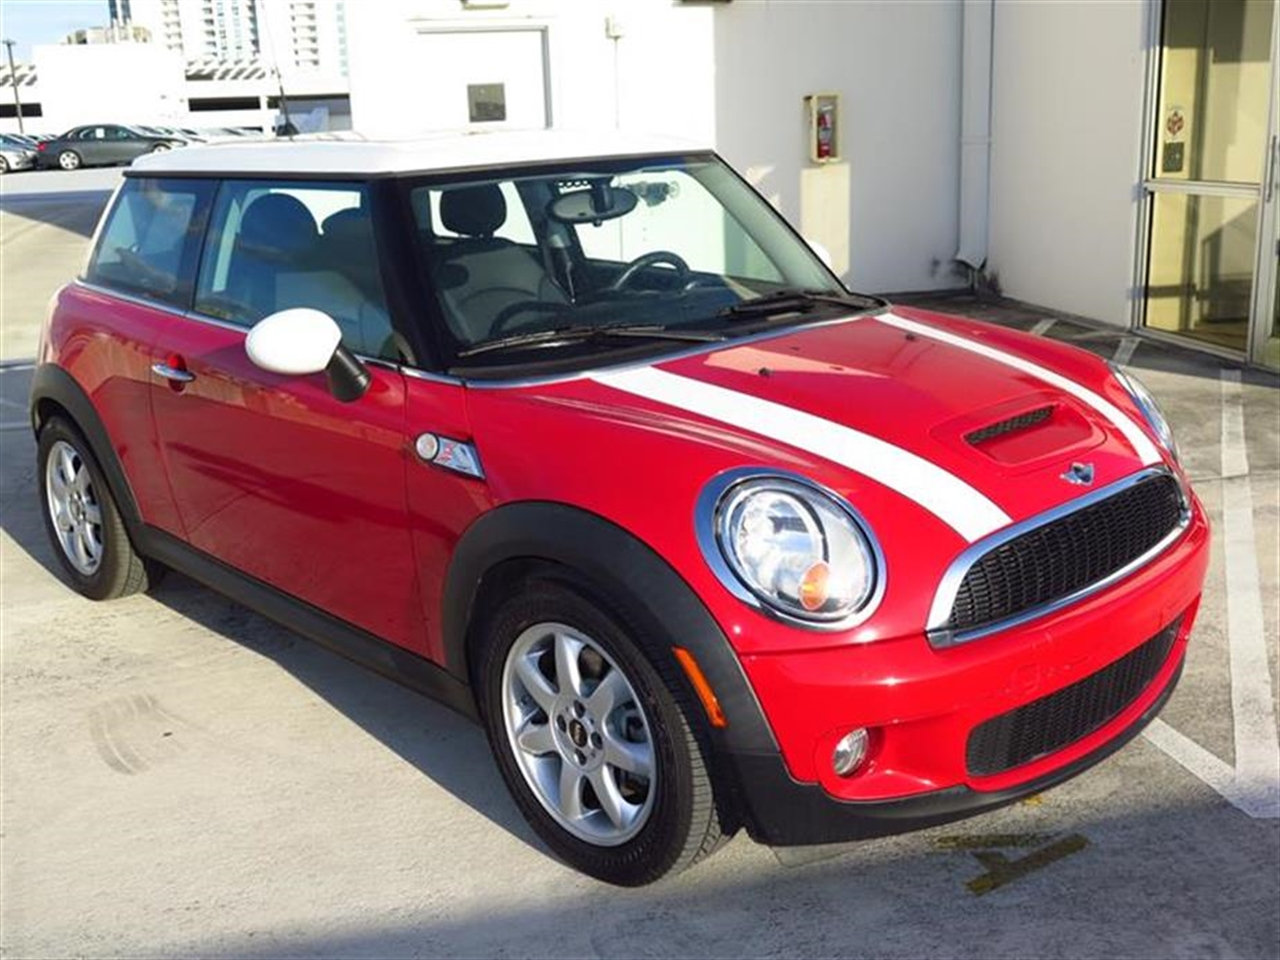 2009 MINI COOPER HARDTOP 2dr Cpe S 36102 miles 1 rear cup holder 12V auxiliary pwr outlet in lu